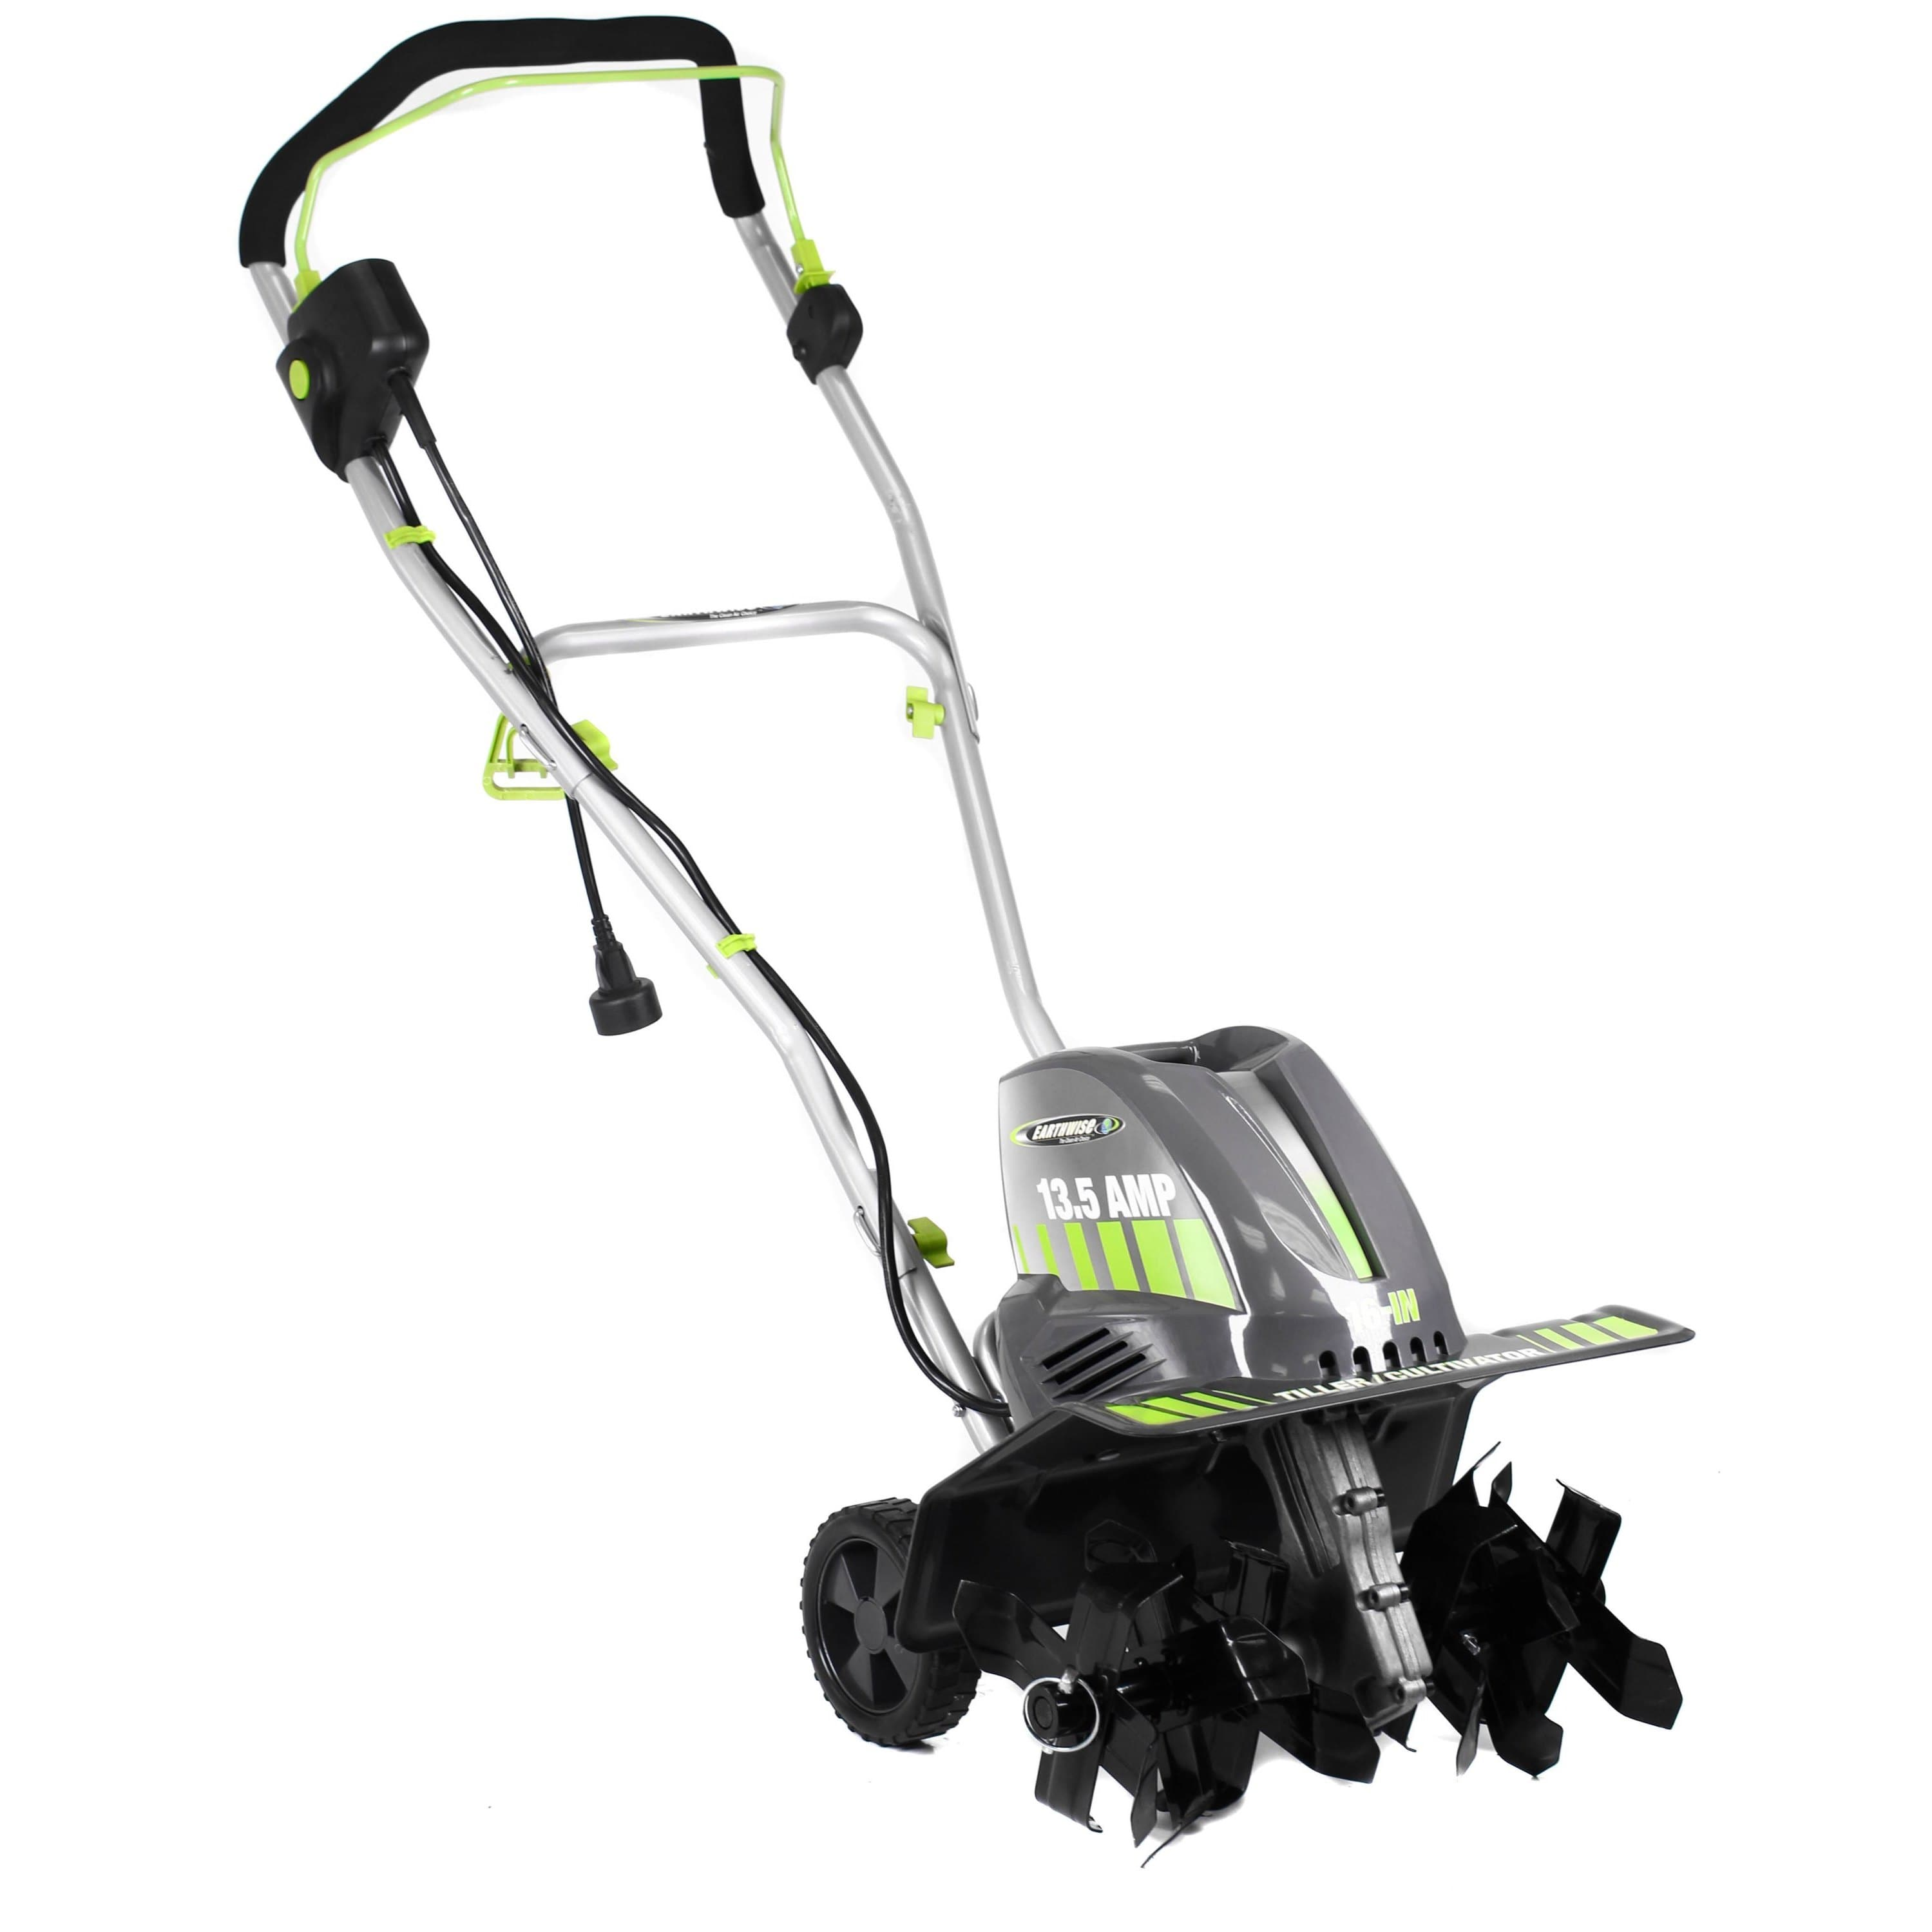 "Earthwise TC70016 16"" 13.5 Amp Corded Electric Tiller/Cultivator with 6 Adjustable Tines"